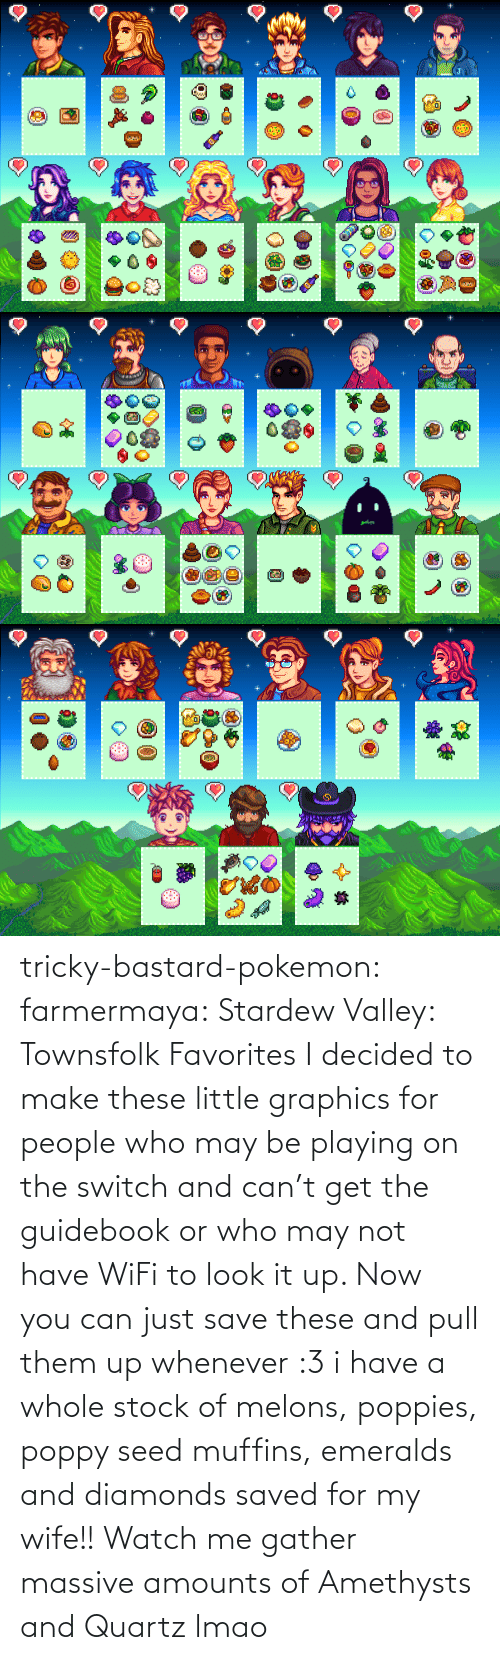 Pull: tricky-bastard-pokemon:  farmermaya: Stardew Valley: Townsfolk Favorites  I decided to make these little graphics for people who may be playing on the switch and can't get the guidebook or who may not have WiFi to look it up. Now you can just save these and pull them up whenever :3   i have a whole stock of melons, poppies, poppy seed muffins, emeralds and diamonds saved for my wife!!    Watch me gather massive amounts of Amethysts and Quartz lmao